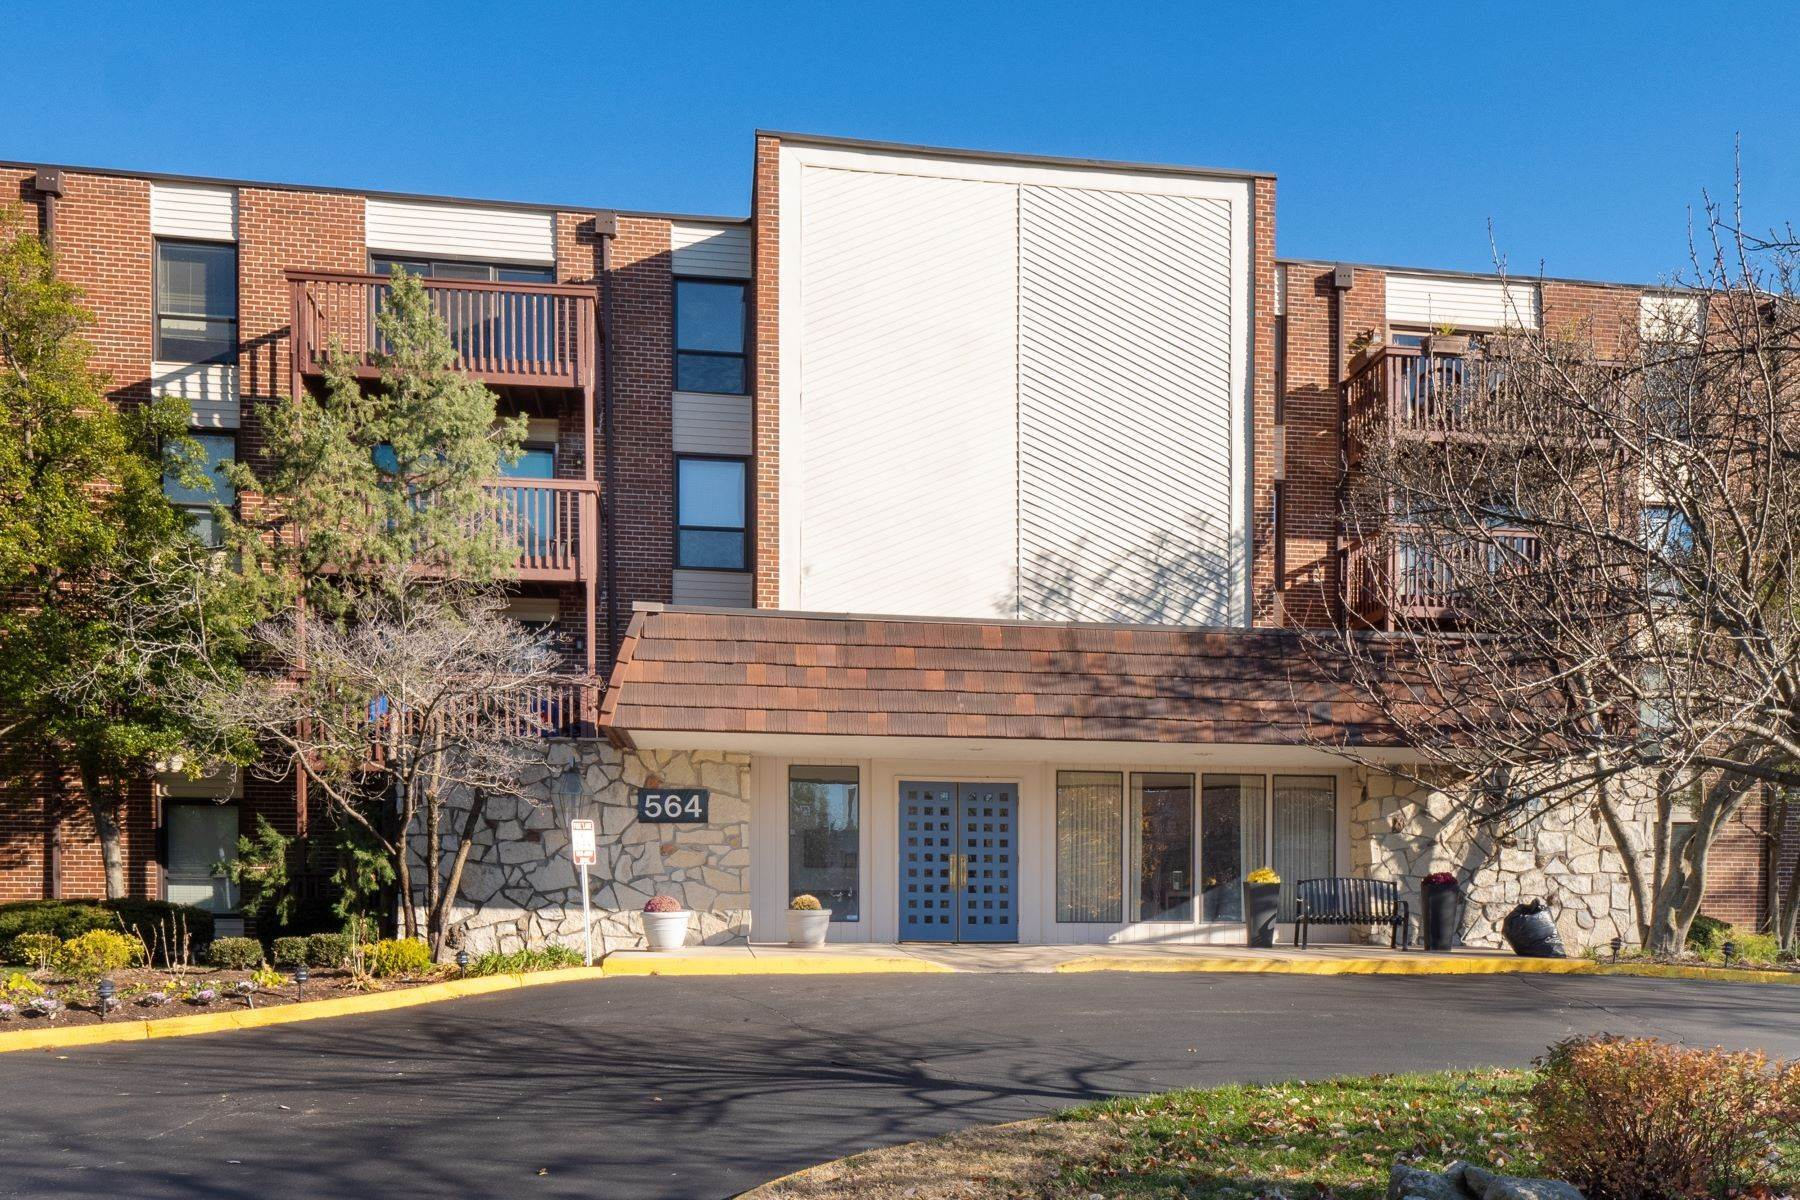 Condominiums for Sale at Updated Creve Coeur Condo With Luxurious Finishes 564 Sarah Lane #207 Creve Coeur, Missouri 63141 United States